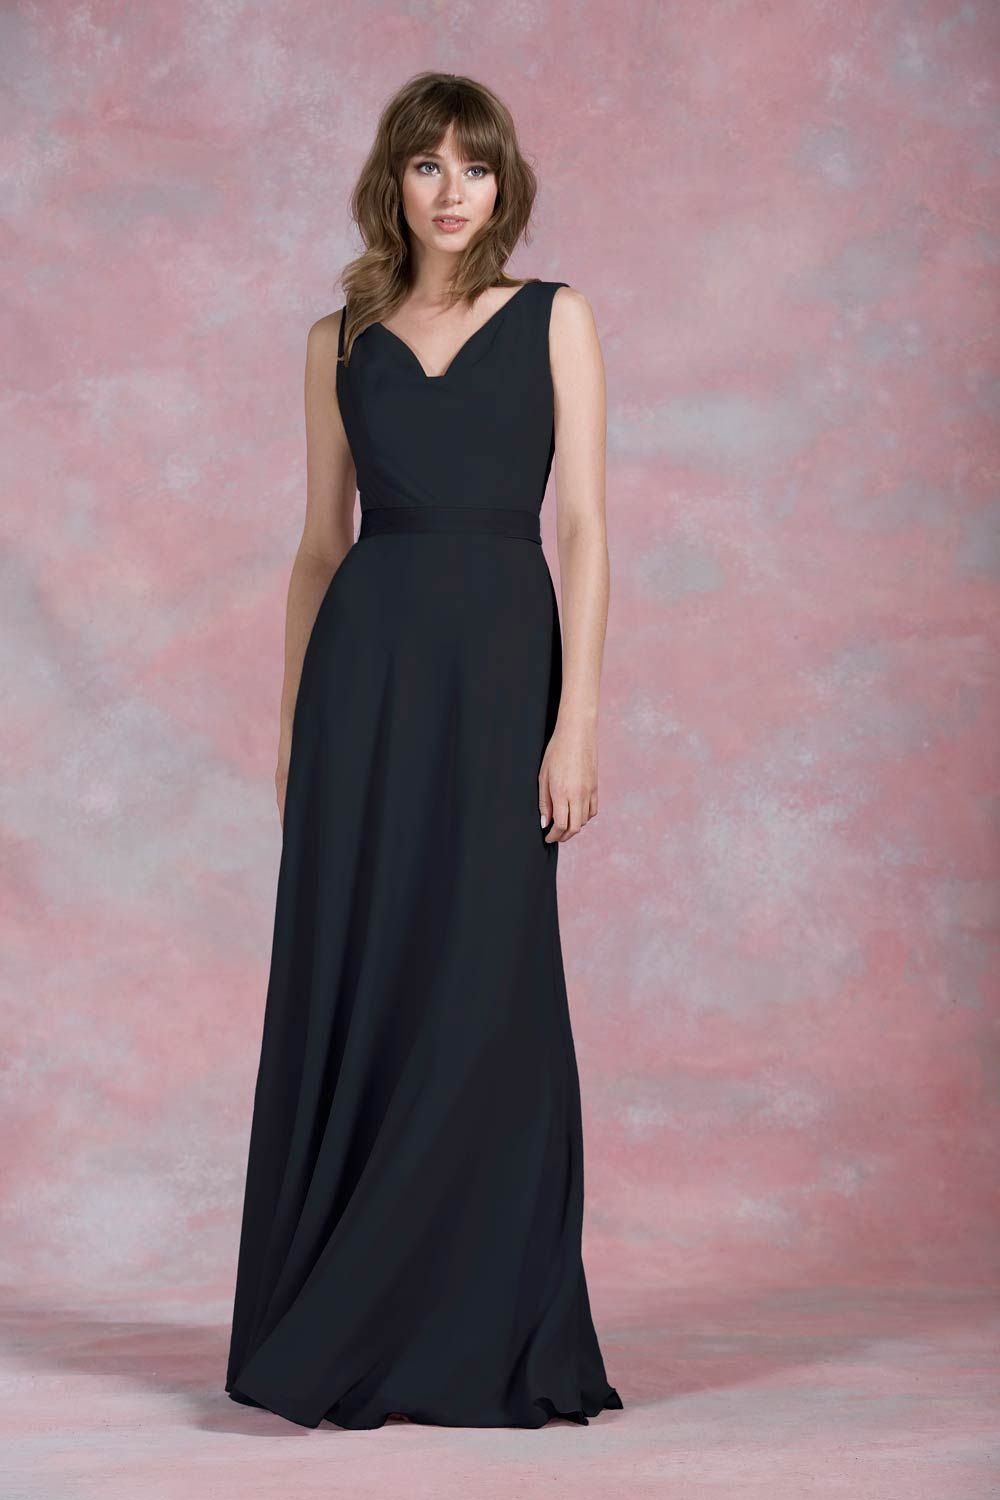 Cowl neck black bridesmaid dress from kelsey rose bridesmaids